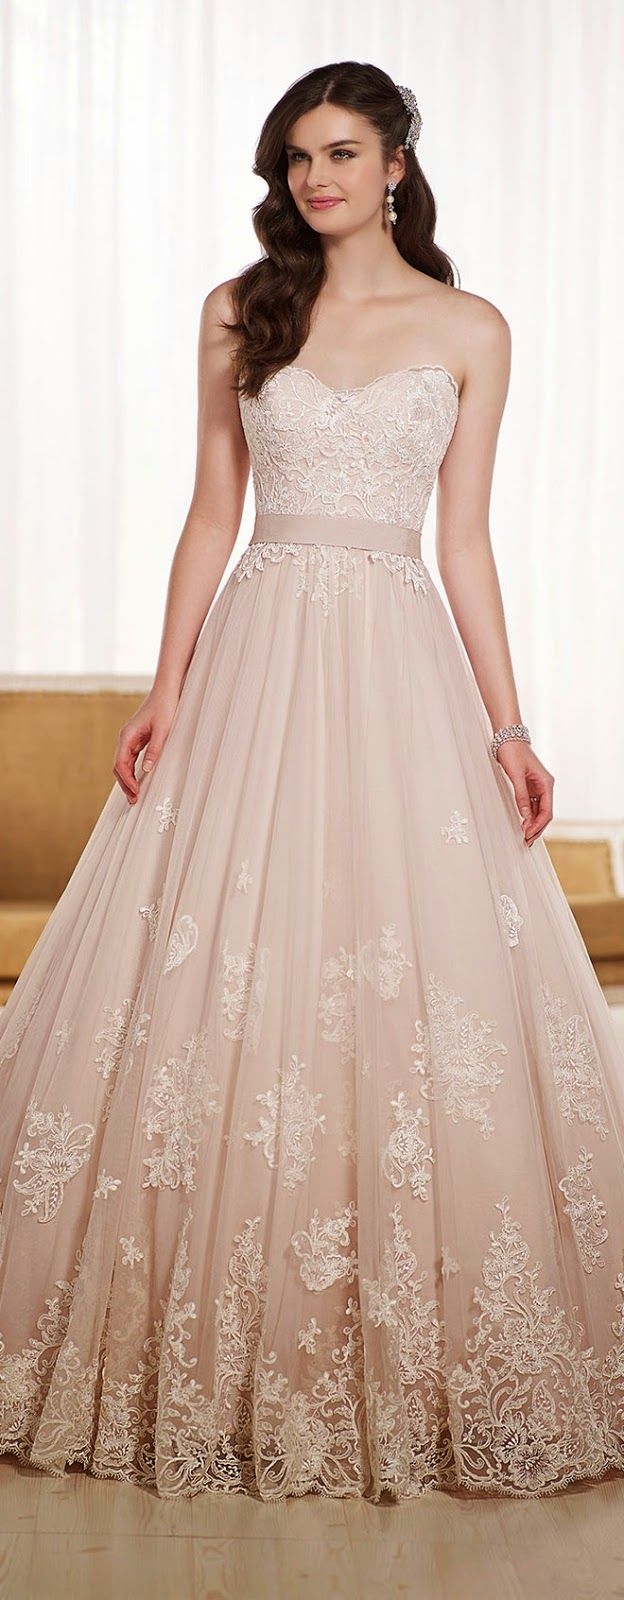 I am involve with Blush colored wedding dresses! Never getting married, but if I did...I'd wear pink!